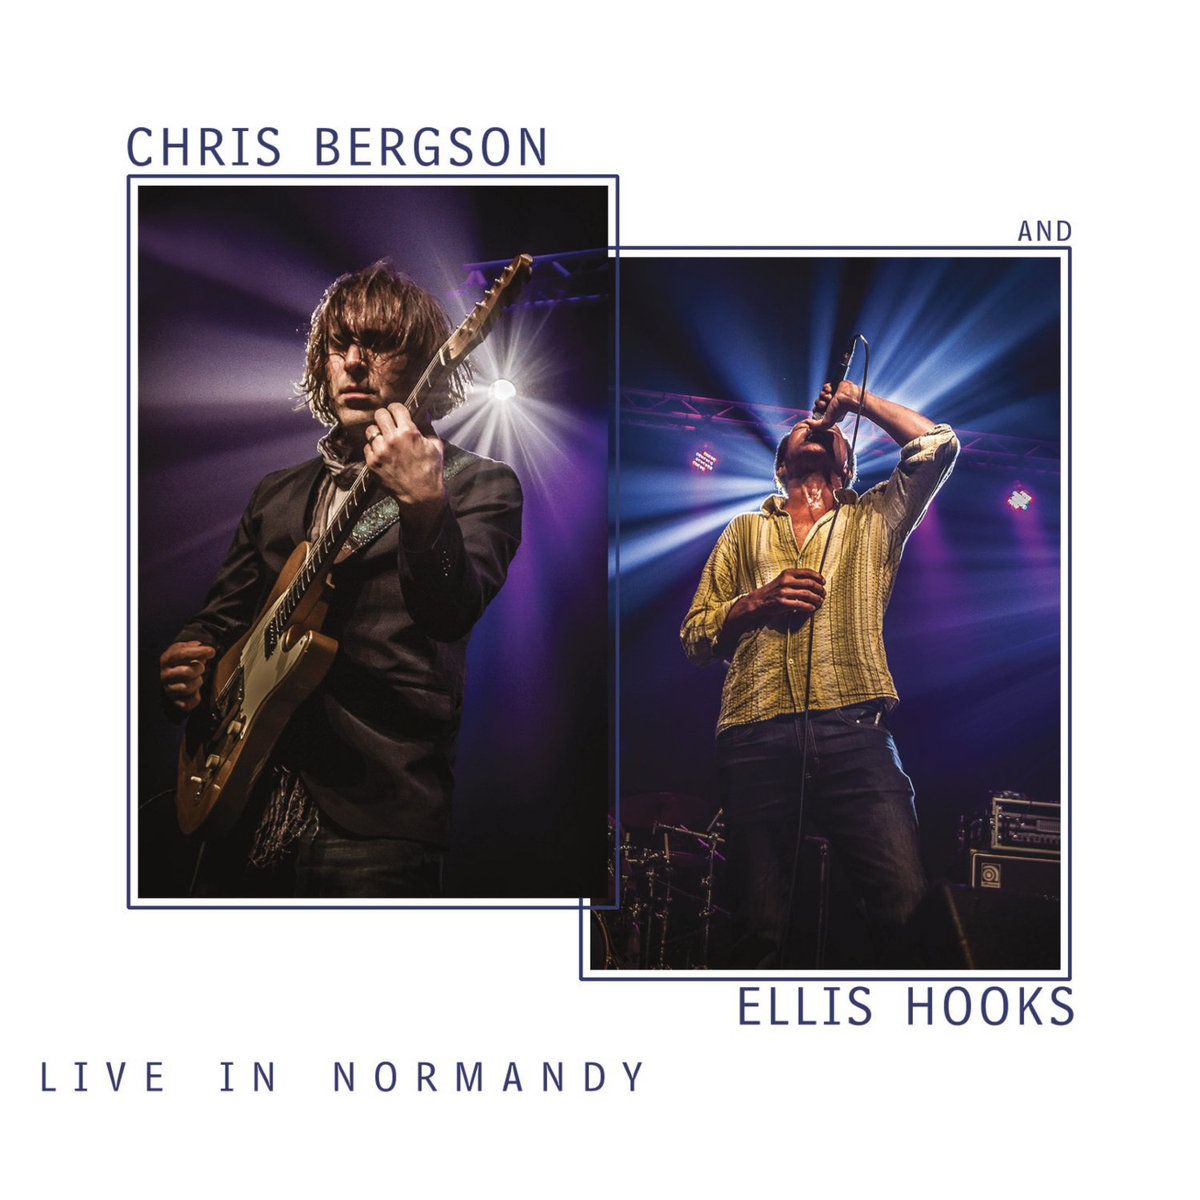 chris-bergson-and-ellis-hooks-live-in-normandy